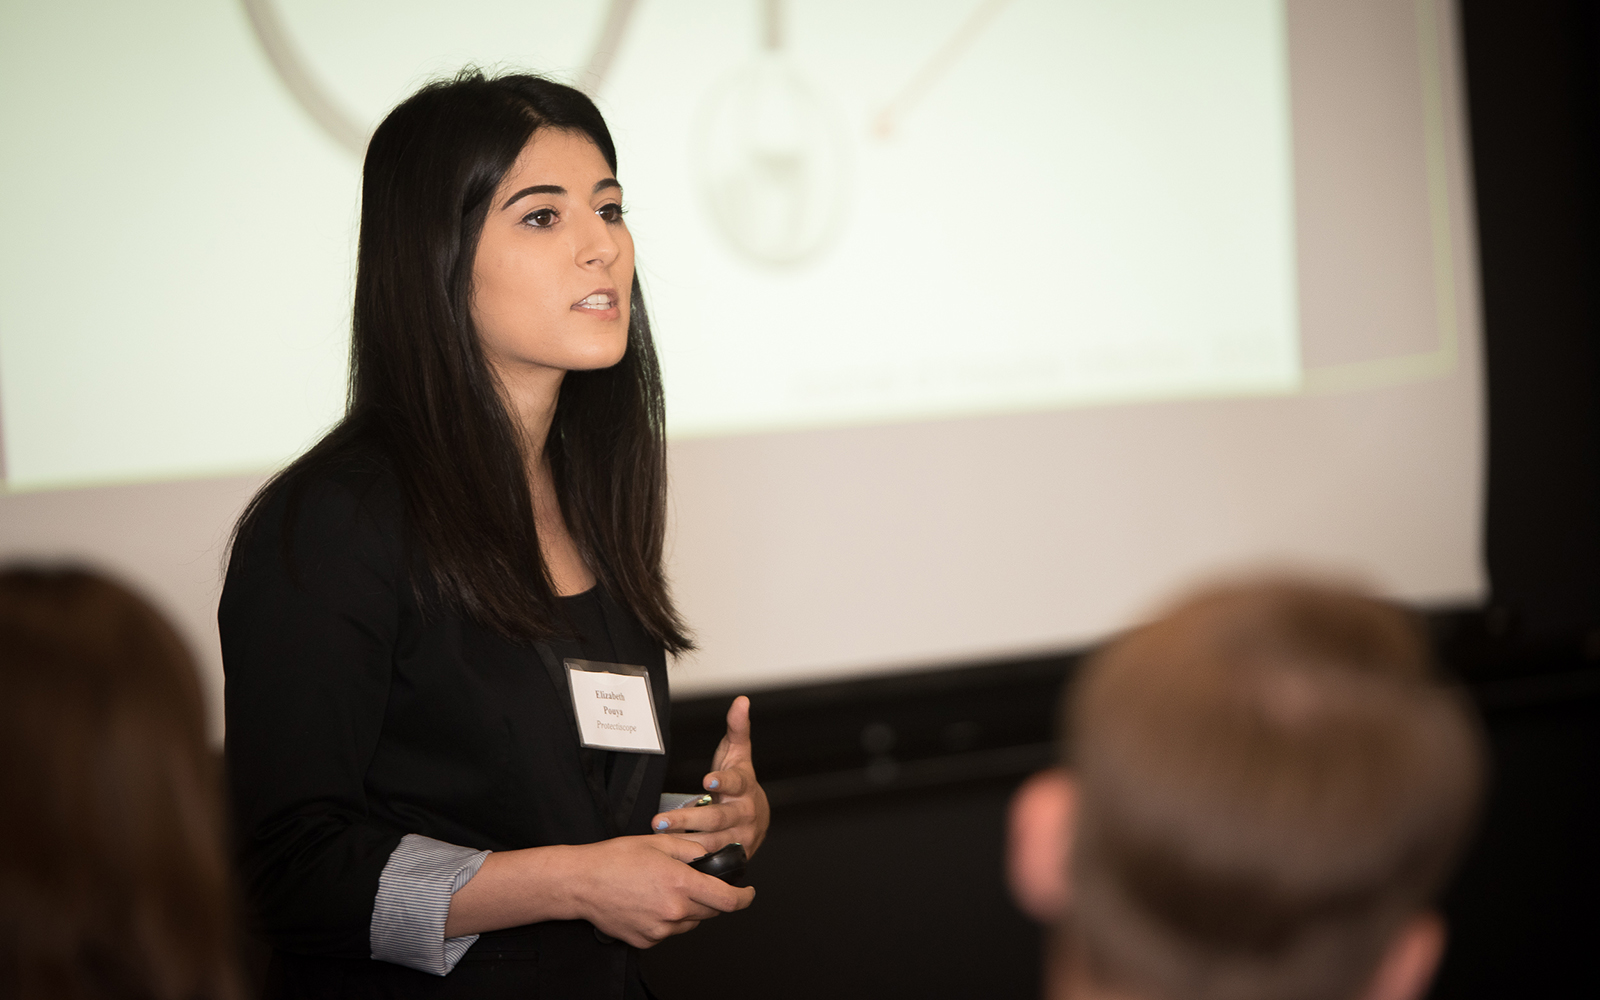 "<i>Elizabeth ""Liz'' Pouya, a rising senior majoring in physiology and neurobiology who ultimately hopes to become a physician, presents her idea to prospective investors. (Nathan Oldham/UConn School of Business)</i>"